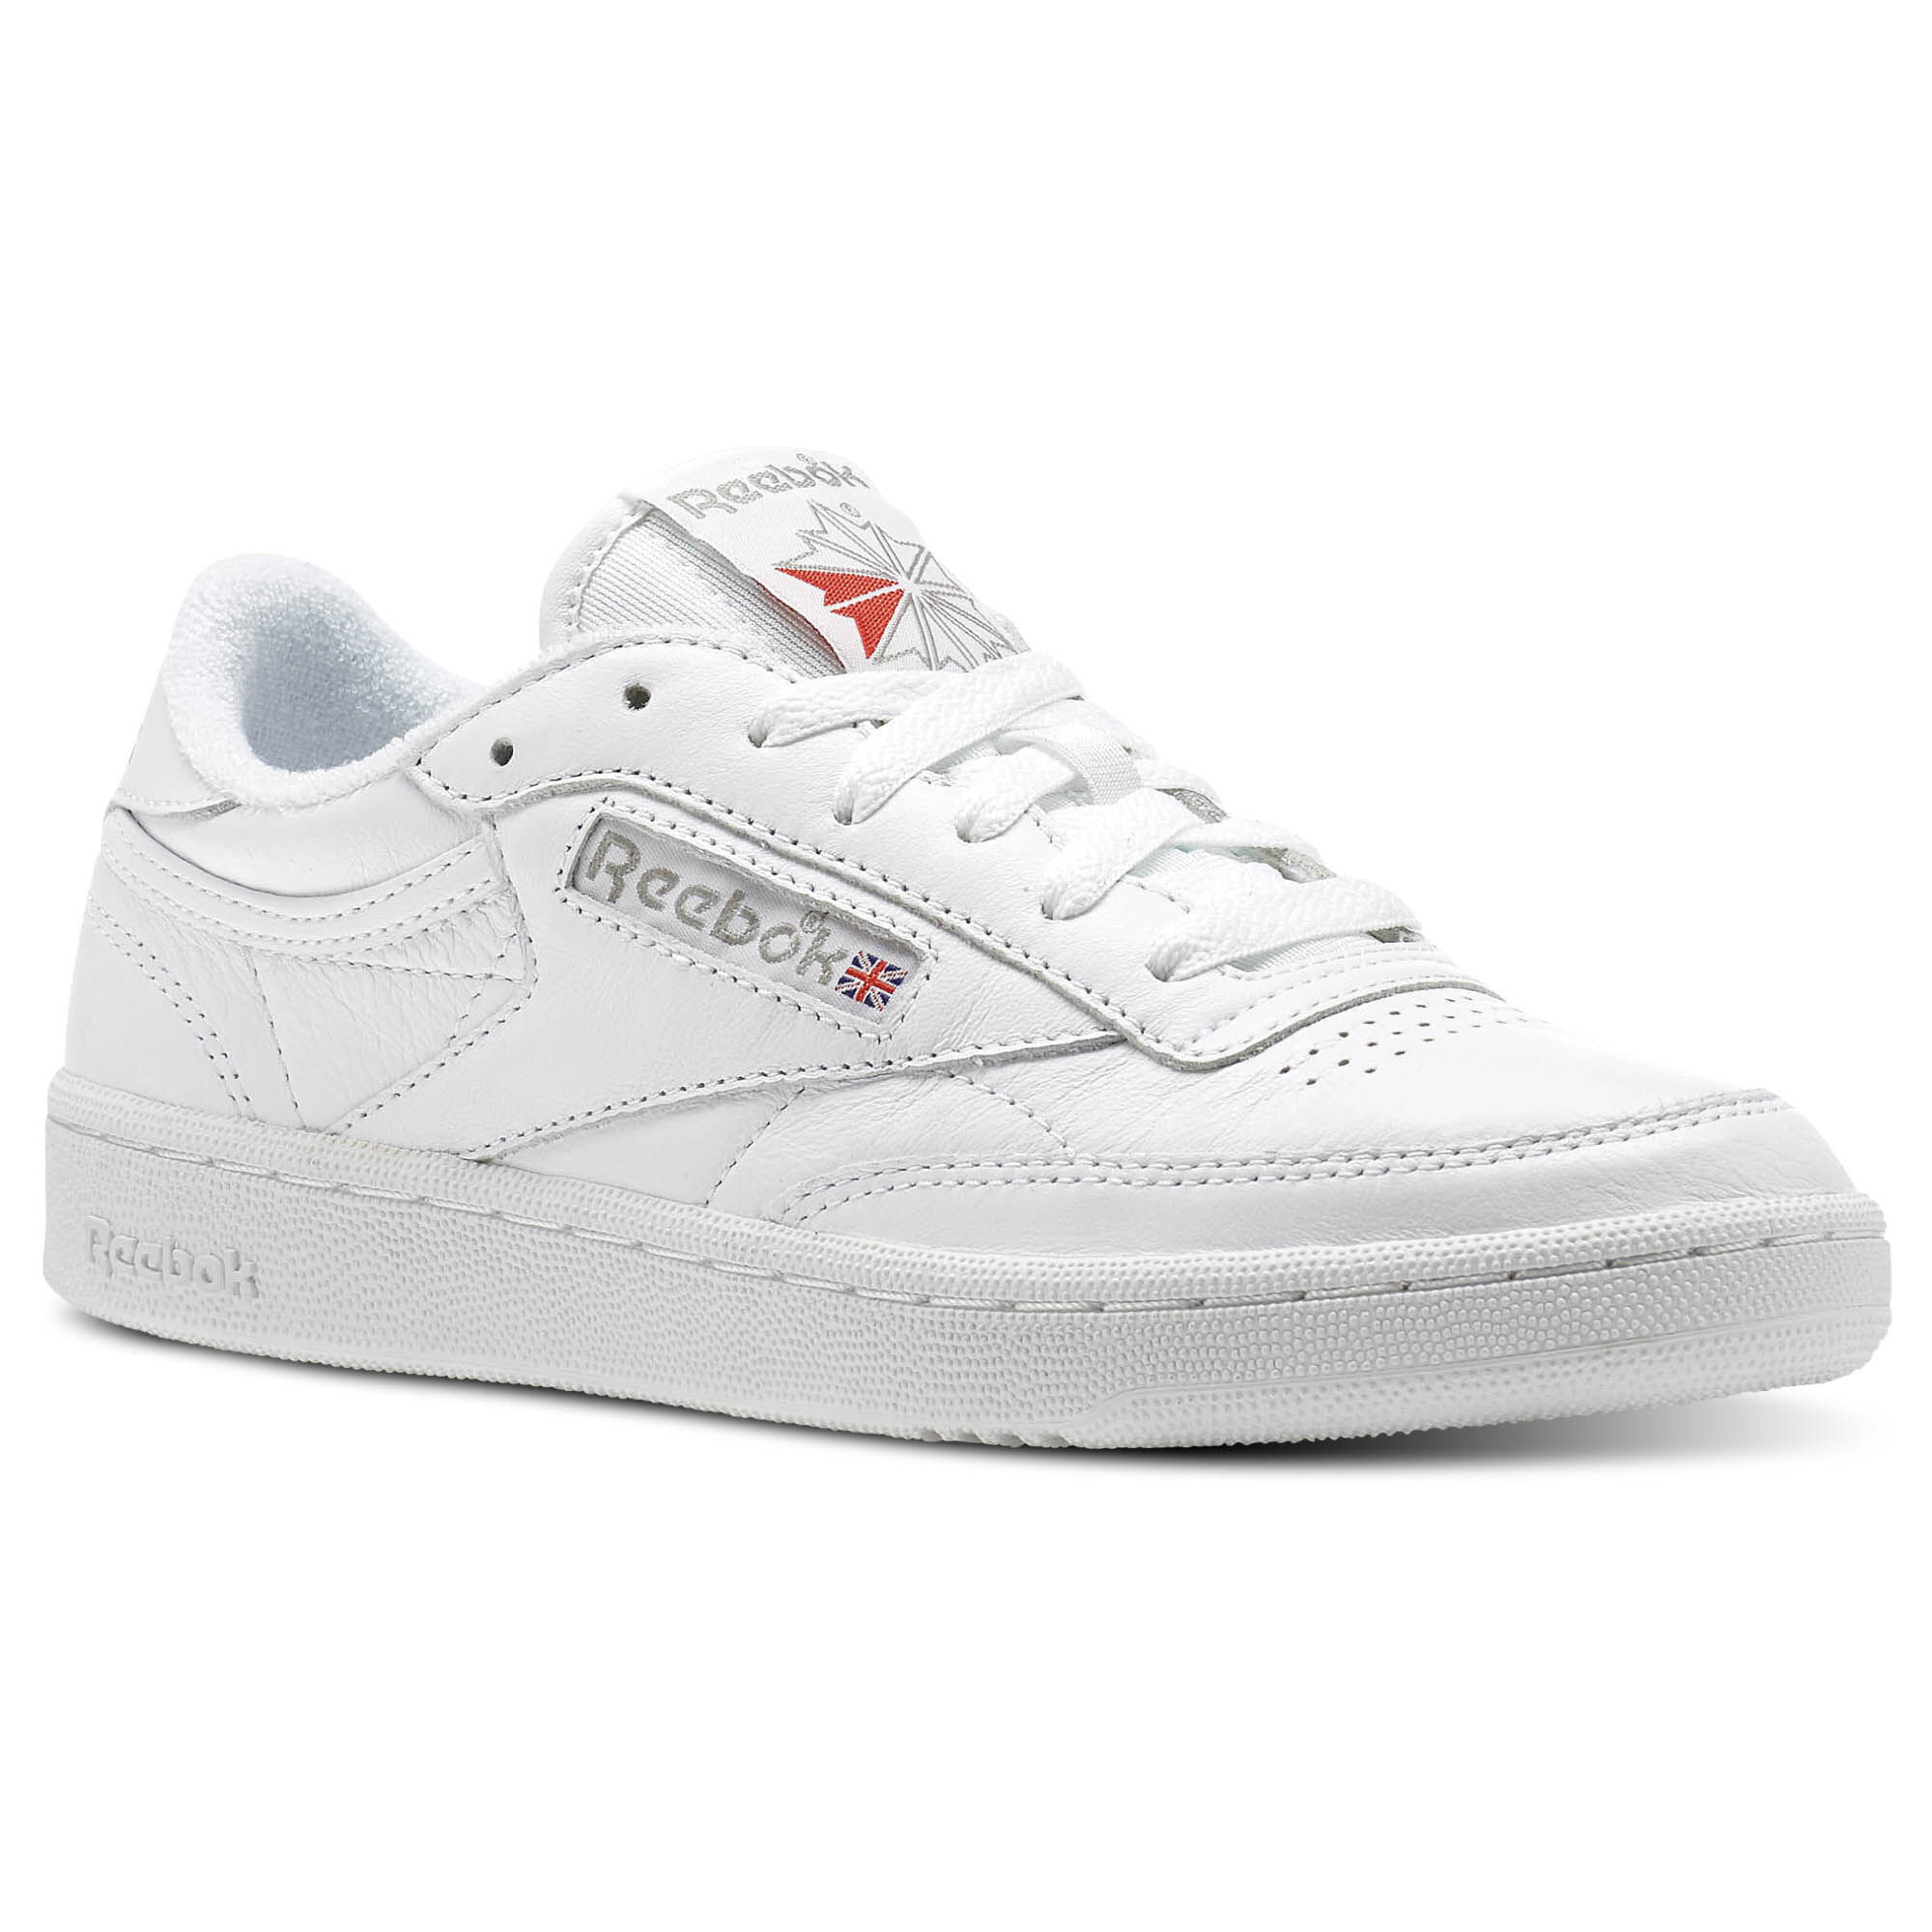 Reebok - Club C 85 Archive White/Carbon/Excellent Red CN0907